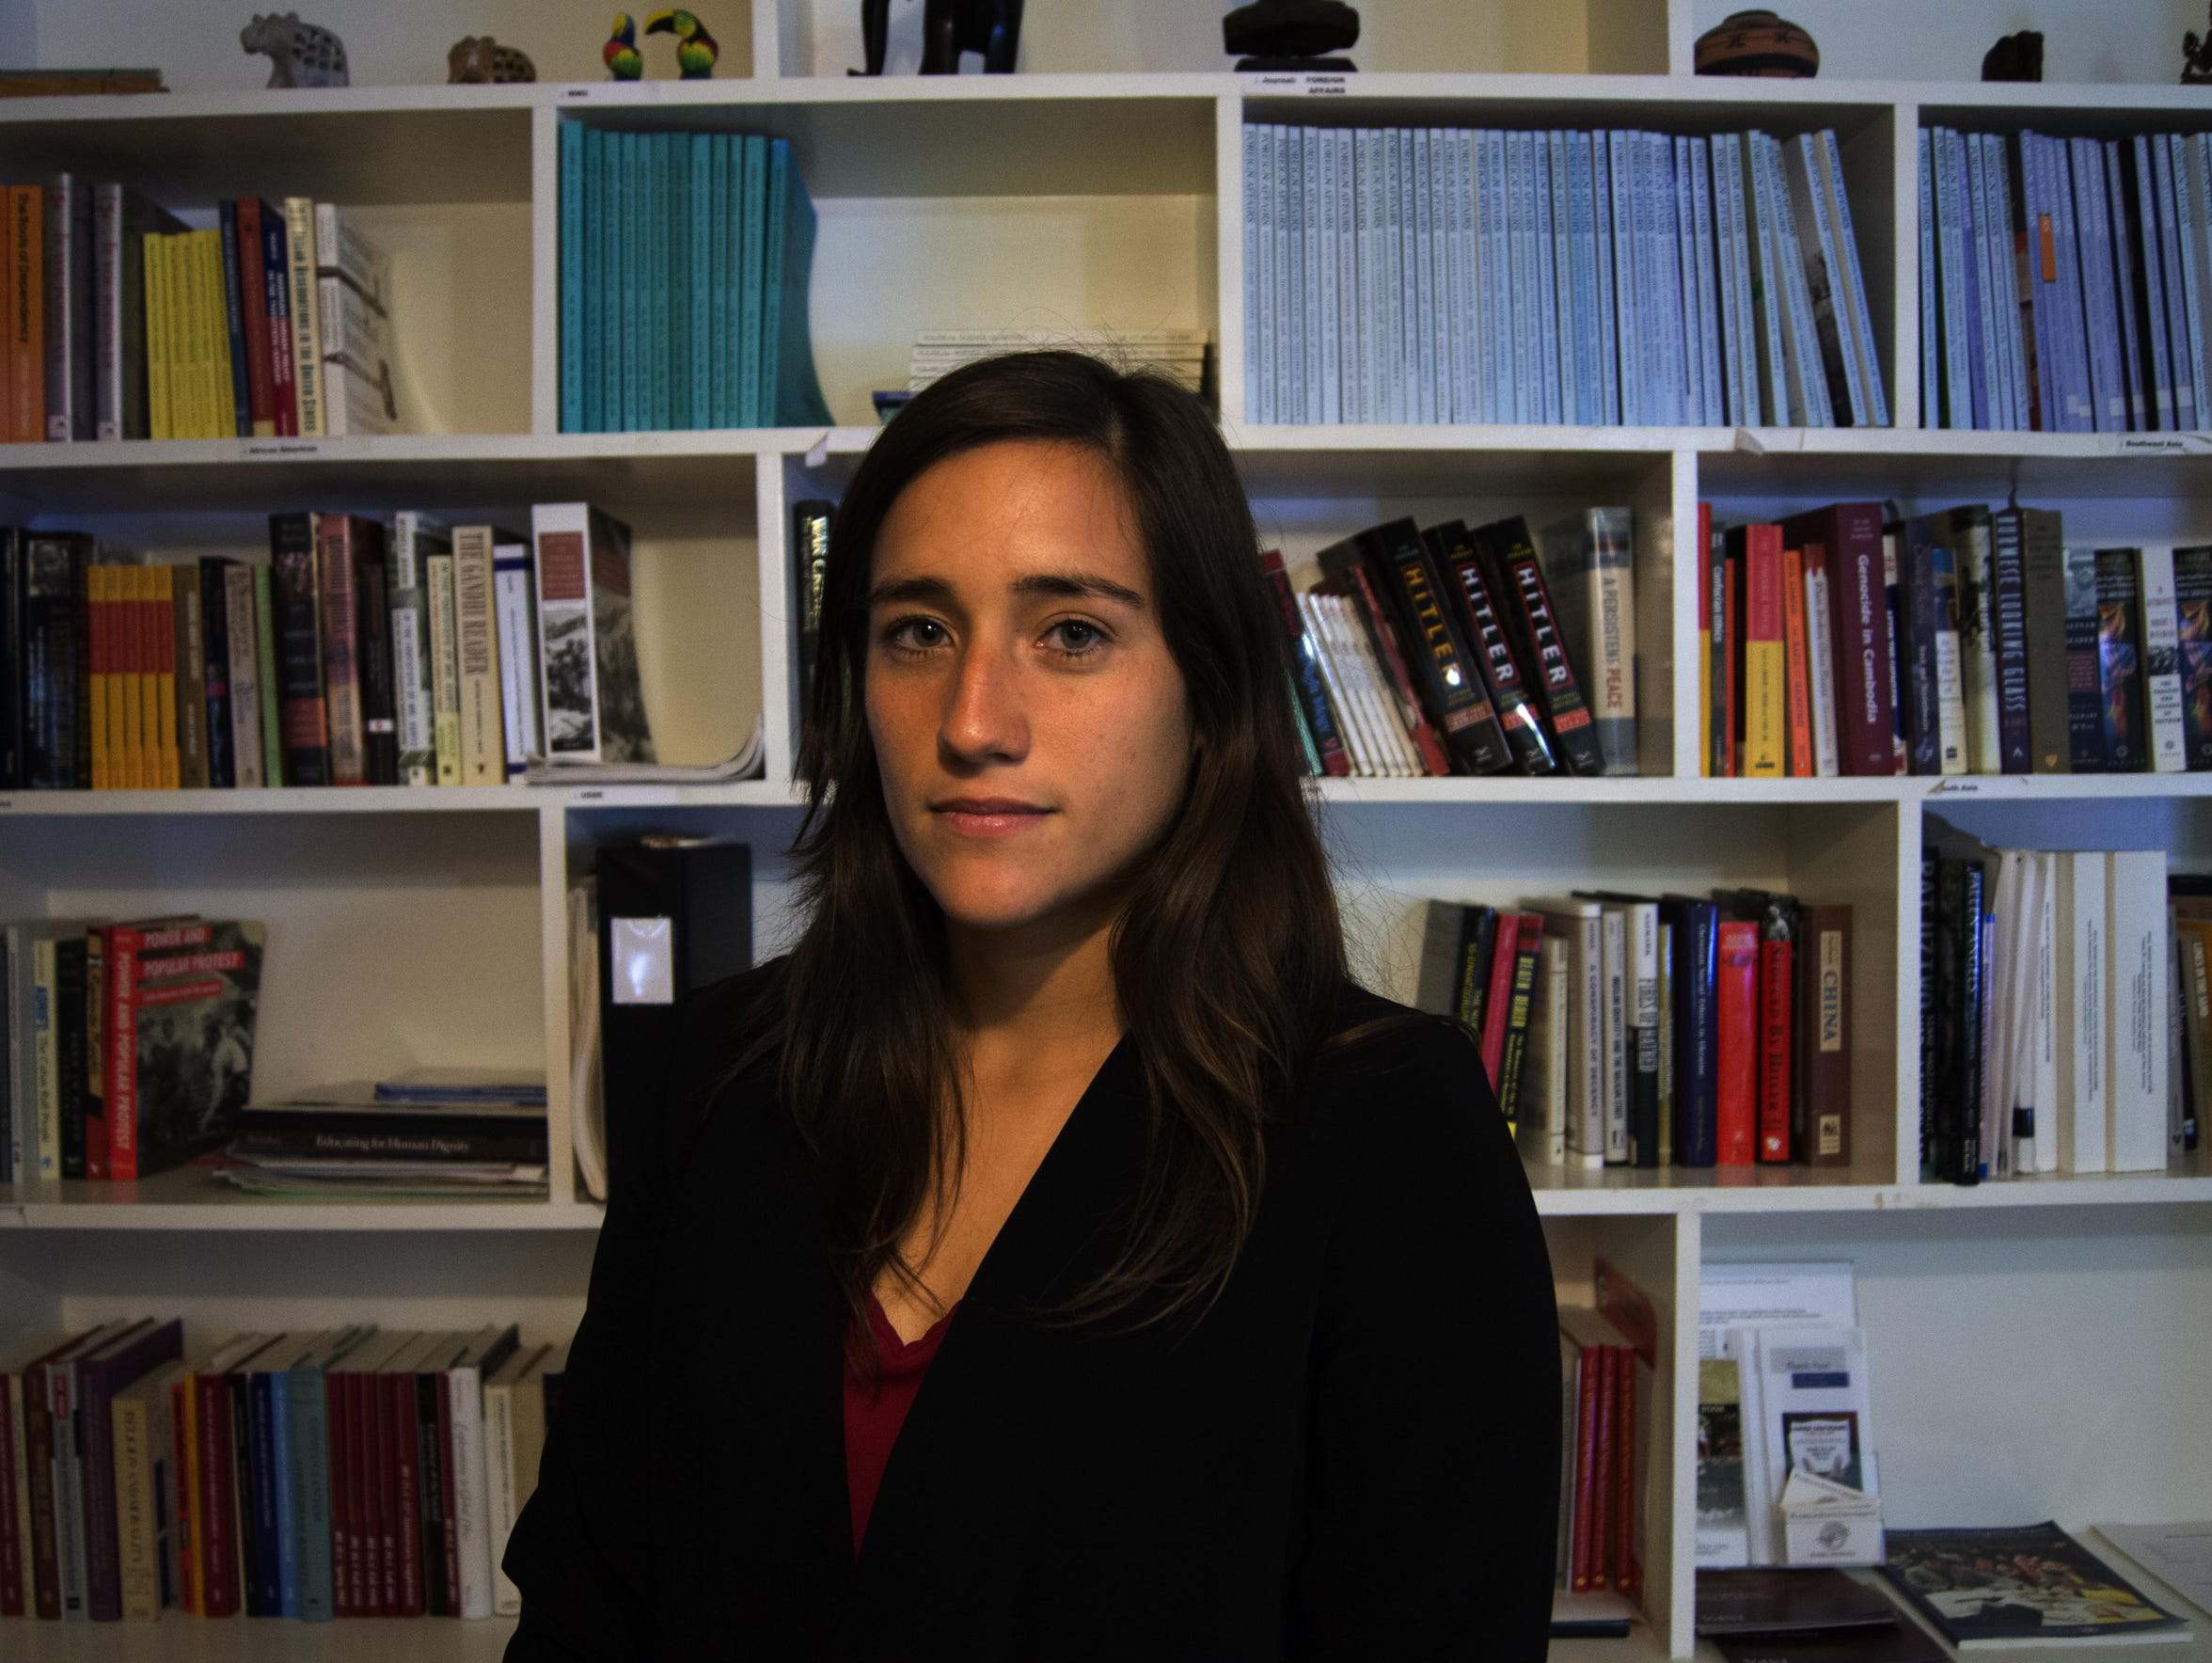 Daniela Donoso Garcia, an undocumented student from